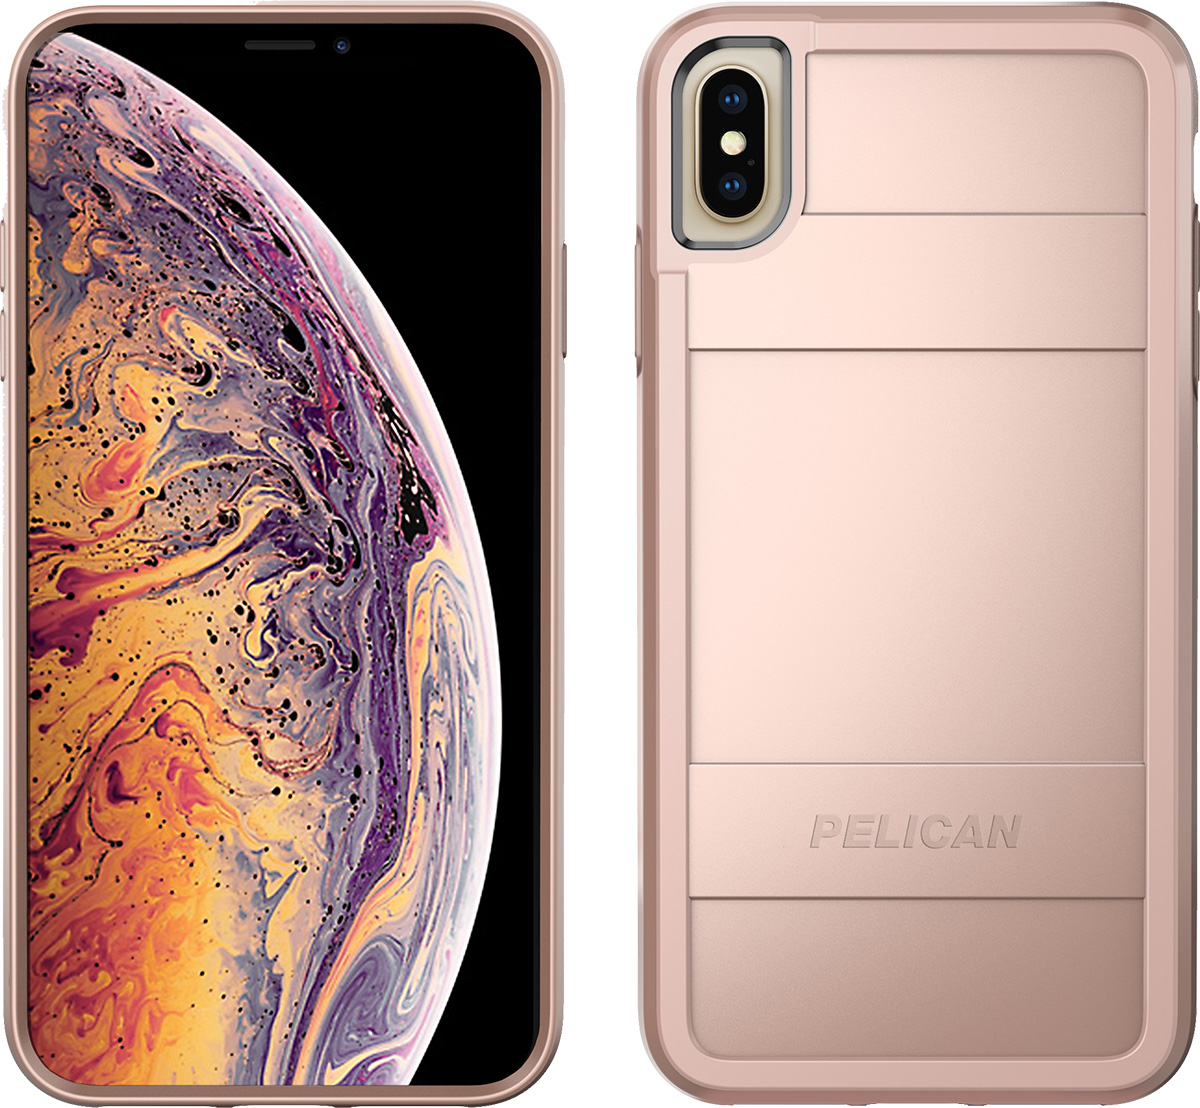 pelican c43000 apple iphone protector rose gold phone case